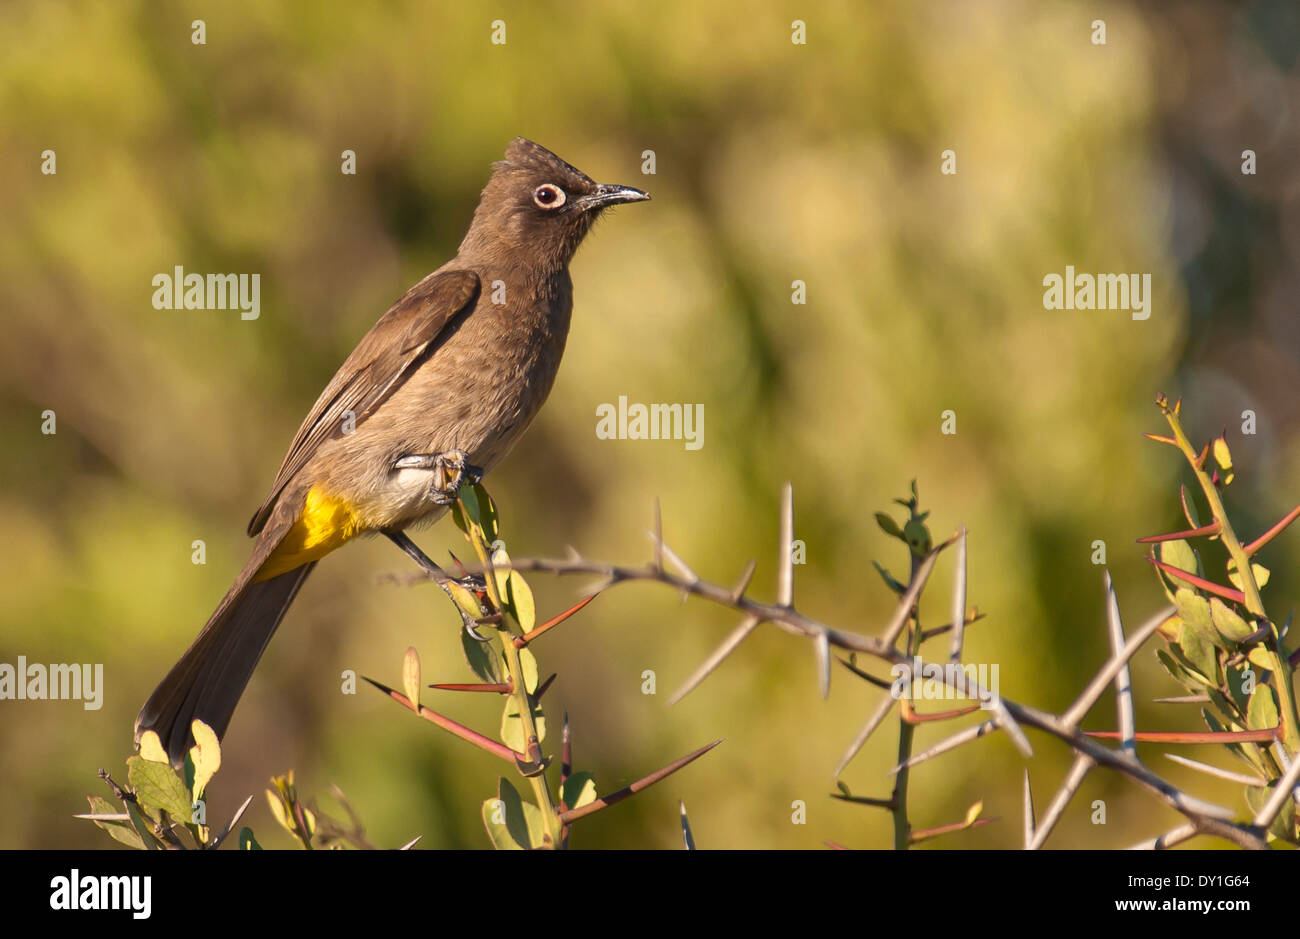 A Cape Bulbul (Pycnonotus capensis) in West Coast National park, Western Cape, South Africa Stock Photo